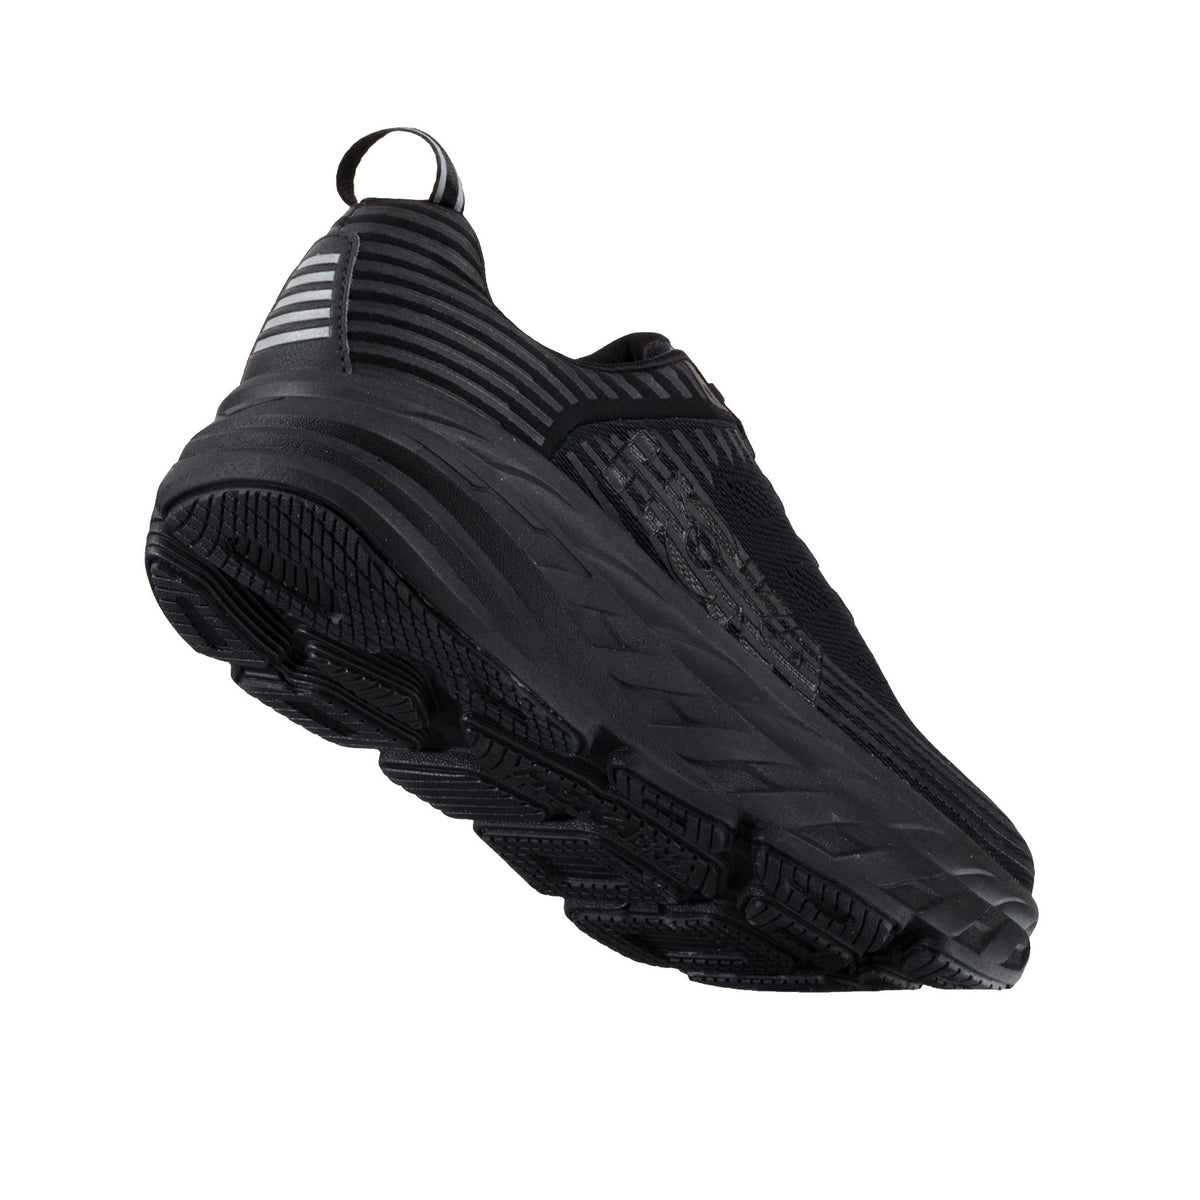 hoka one one shoes online bondi 6 black runners footwear sneakers